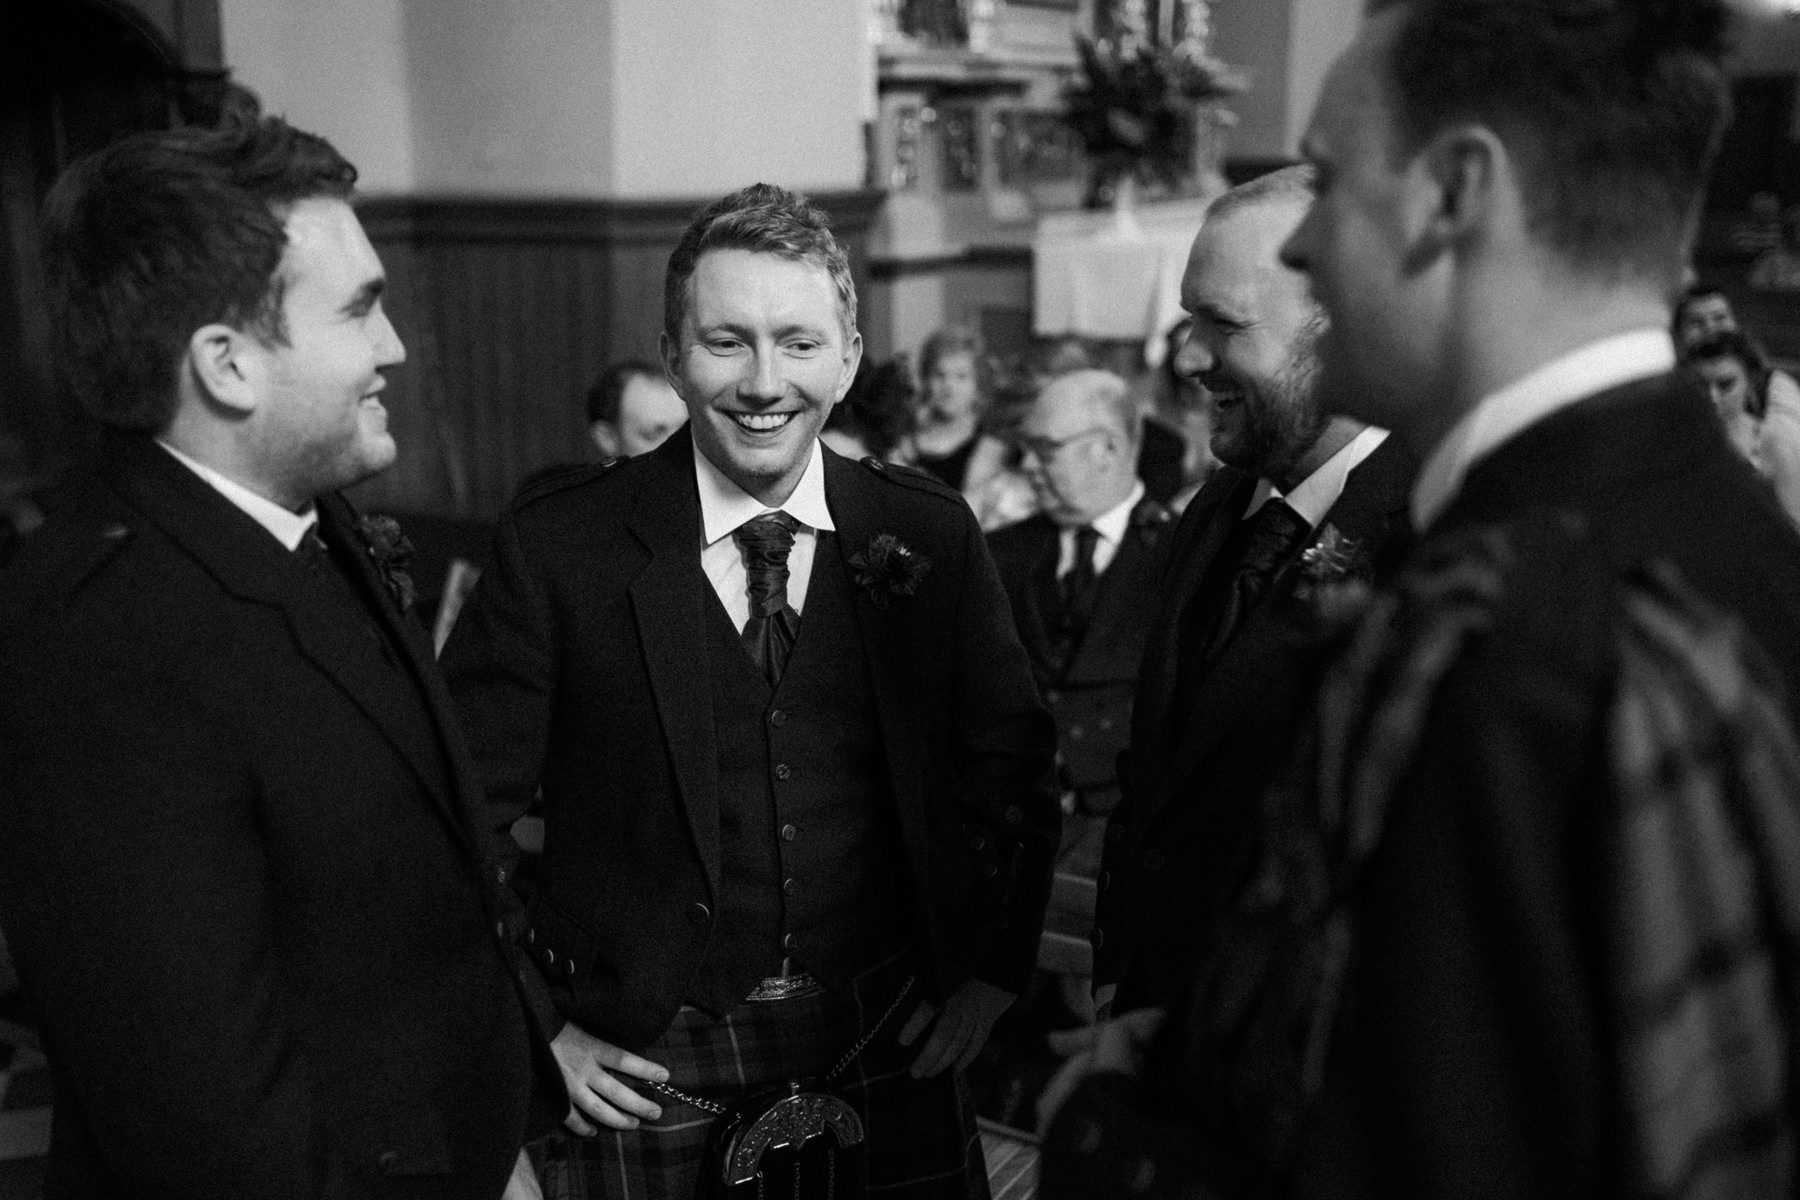 Polish-Scottish wedding in Poland